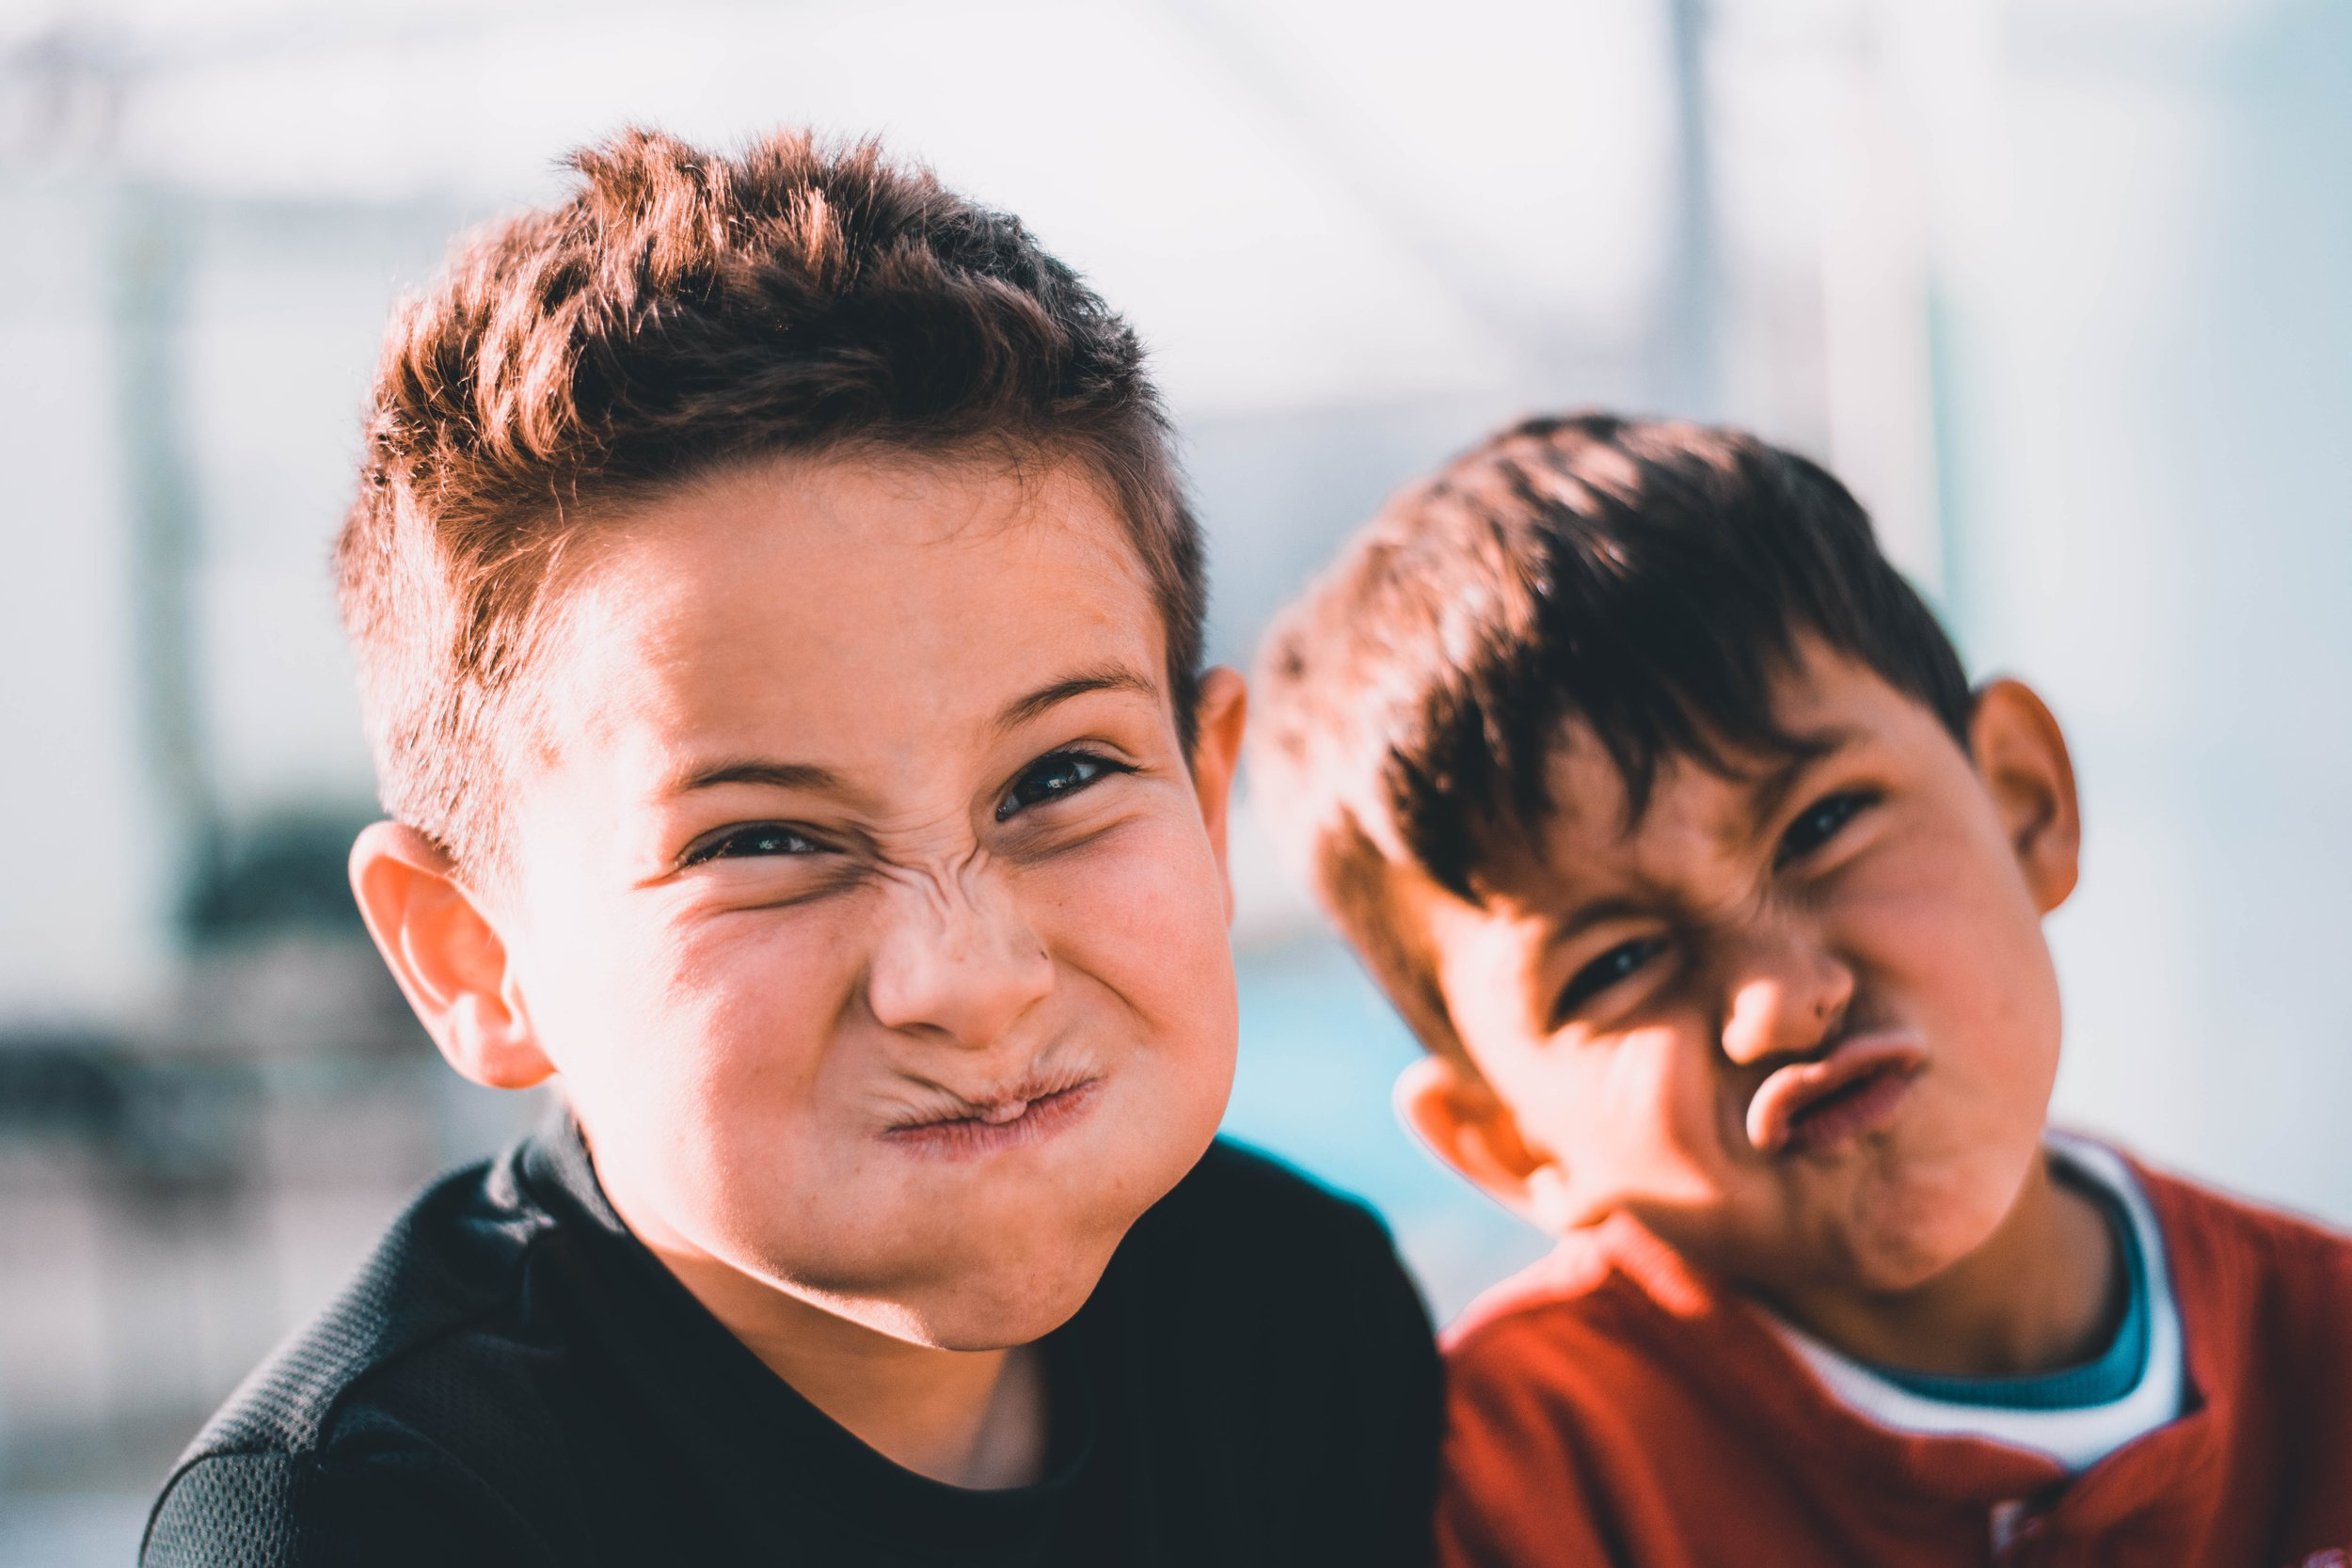 Discovery Zone - Your children will have a blast at Discovery Zone. Our Teachers love to play, inspire and invest in young people, building little leaders who love Jesus and the Church!